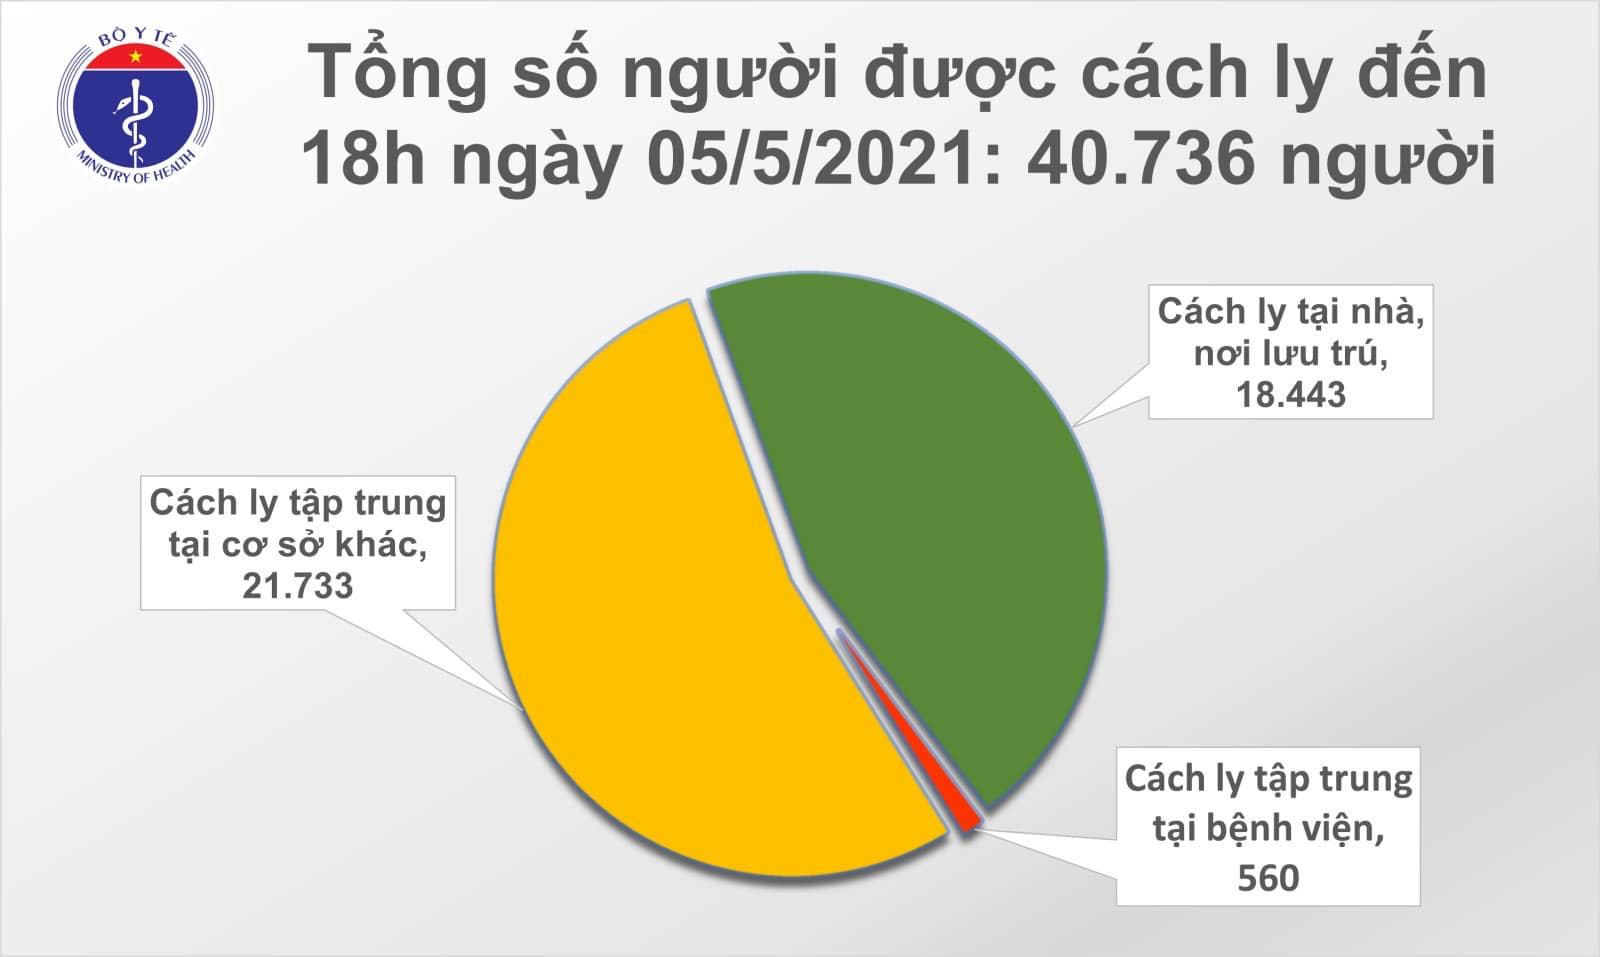 On the afternoon of May 5, an additional 26 cases of Covid-19 were found, with 18 cases discovered in the community - Photo 3.